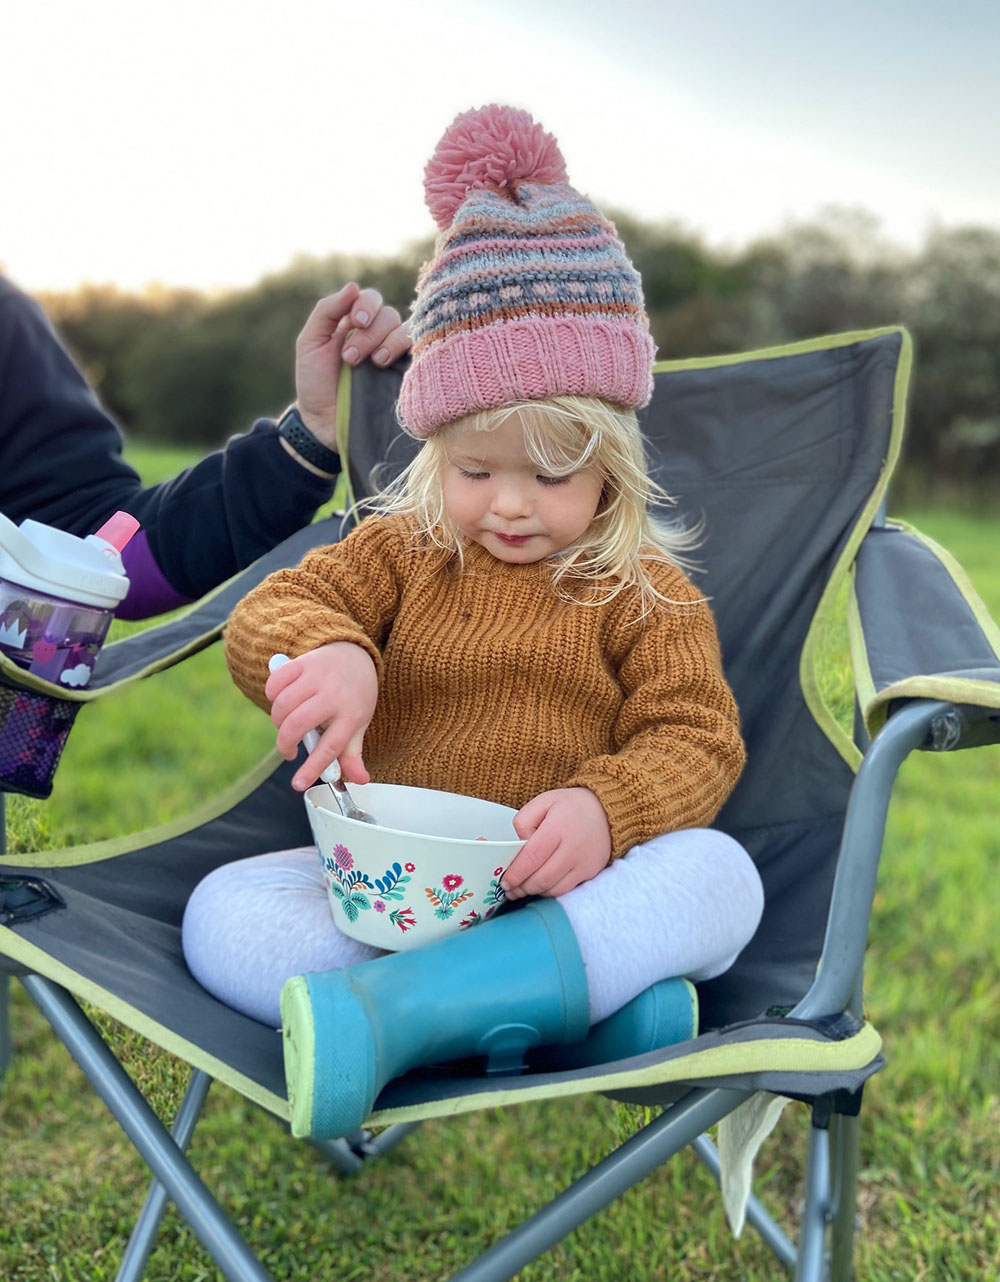 Camping with a toddler